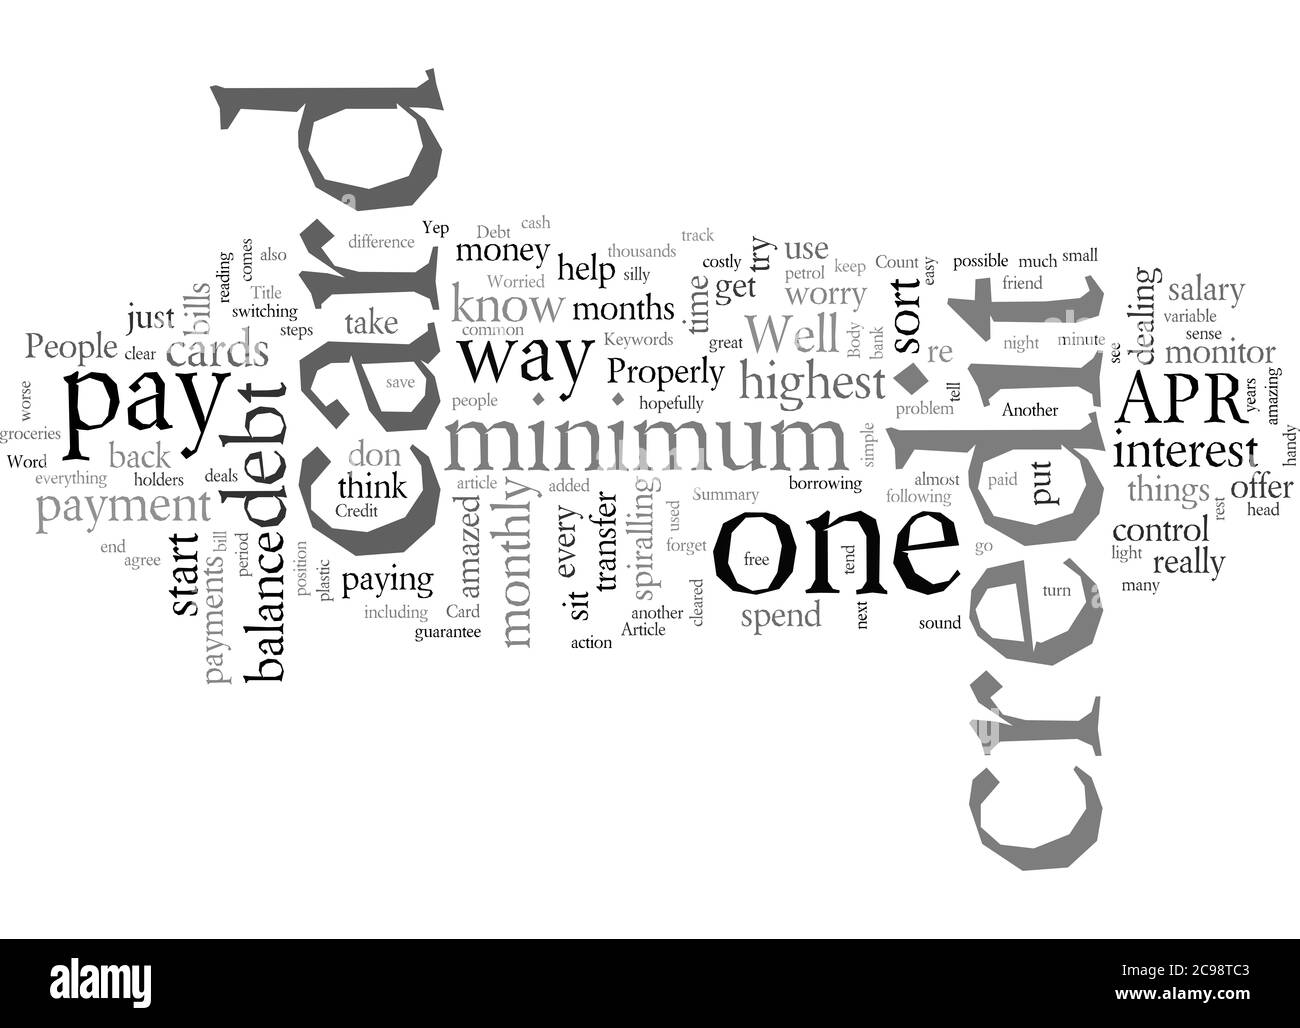 Word Cloud Summary of Are You Worried About Credit Card Debt Article Stock Photo